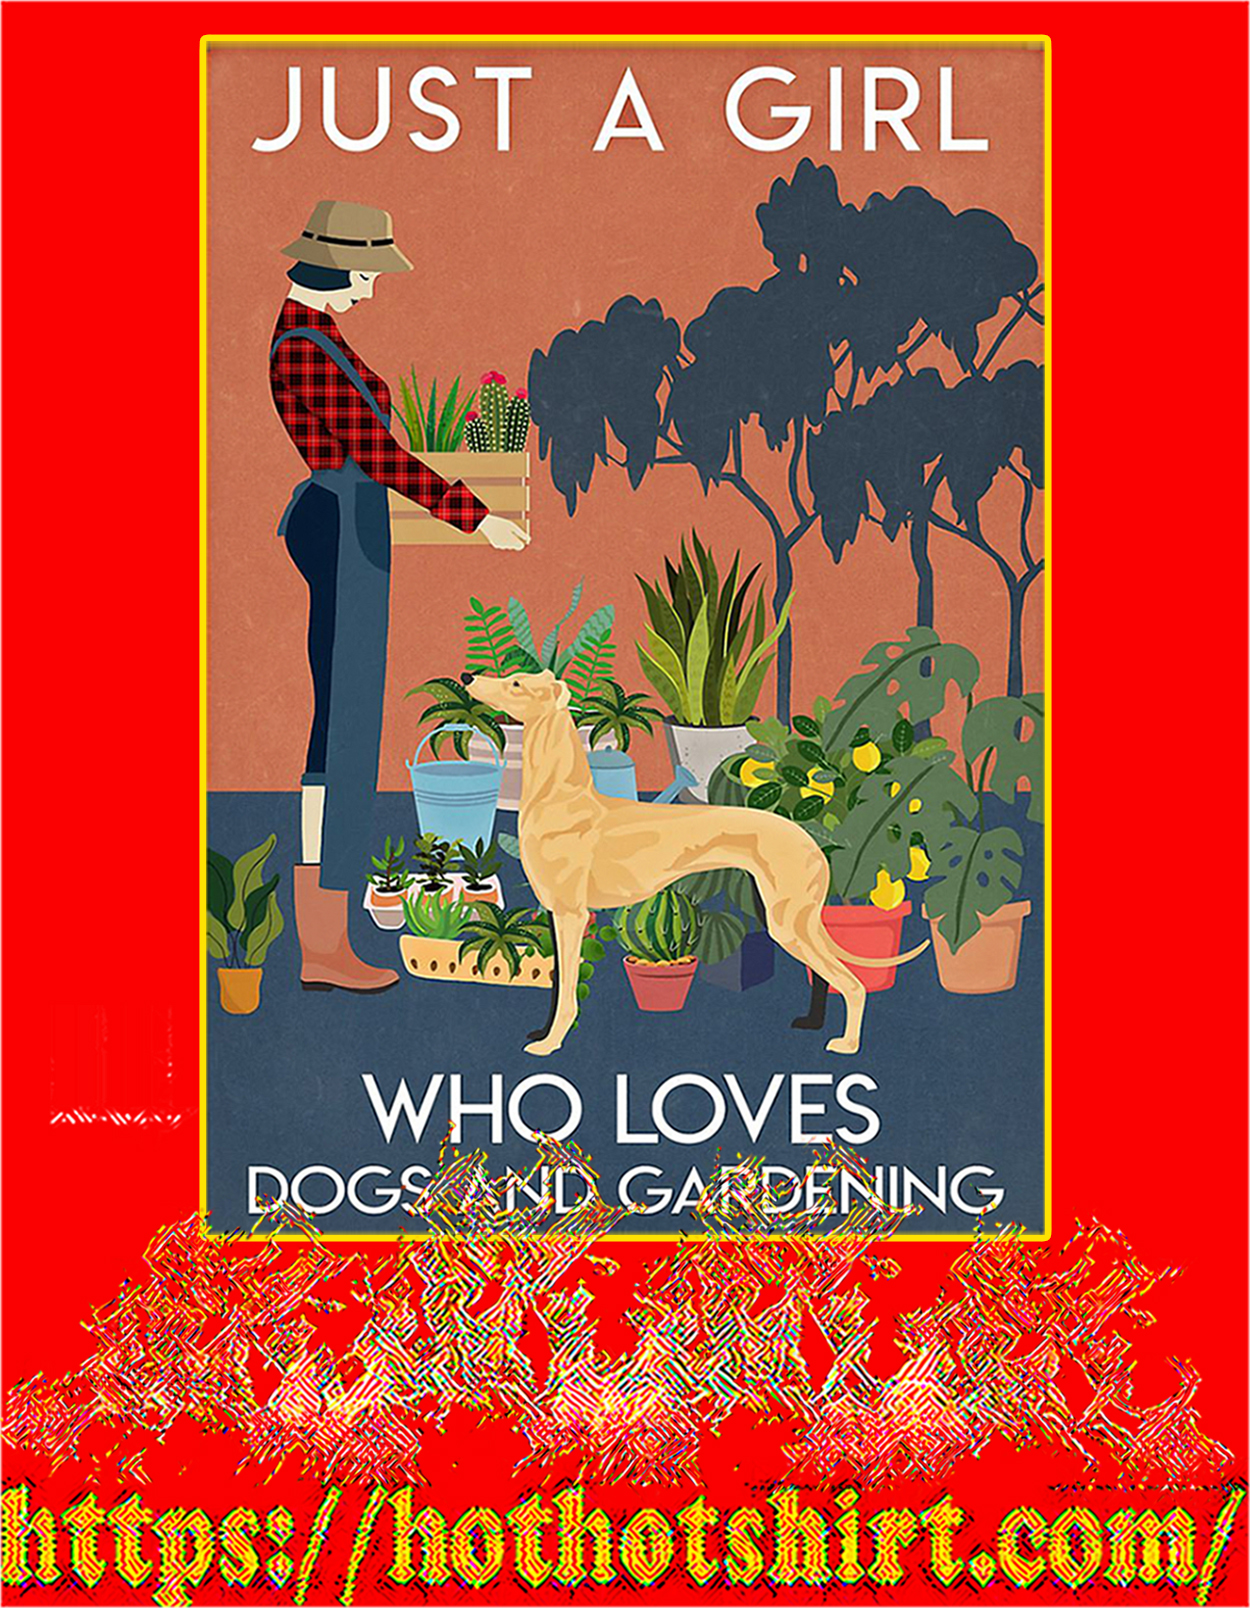 Greyhound Just a girl who loves dogs and gardening poster - A3